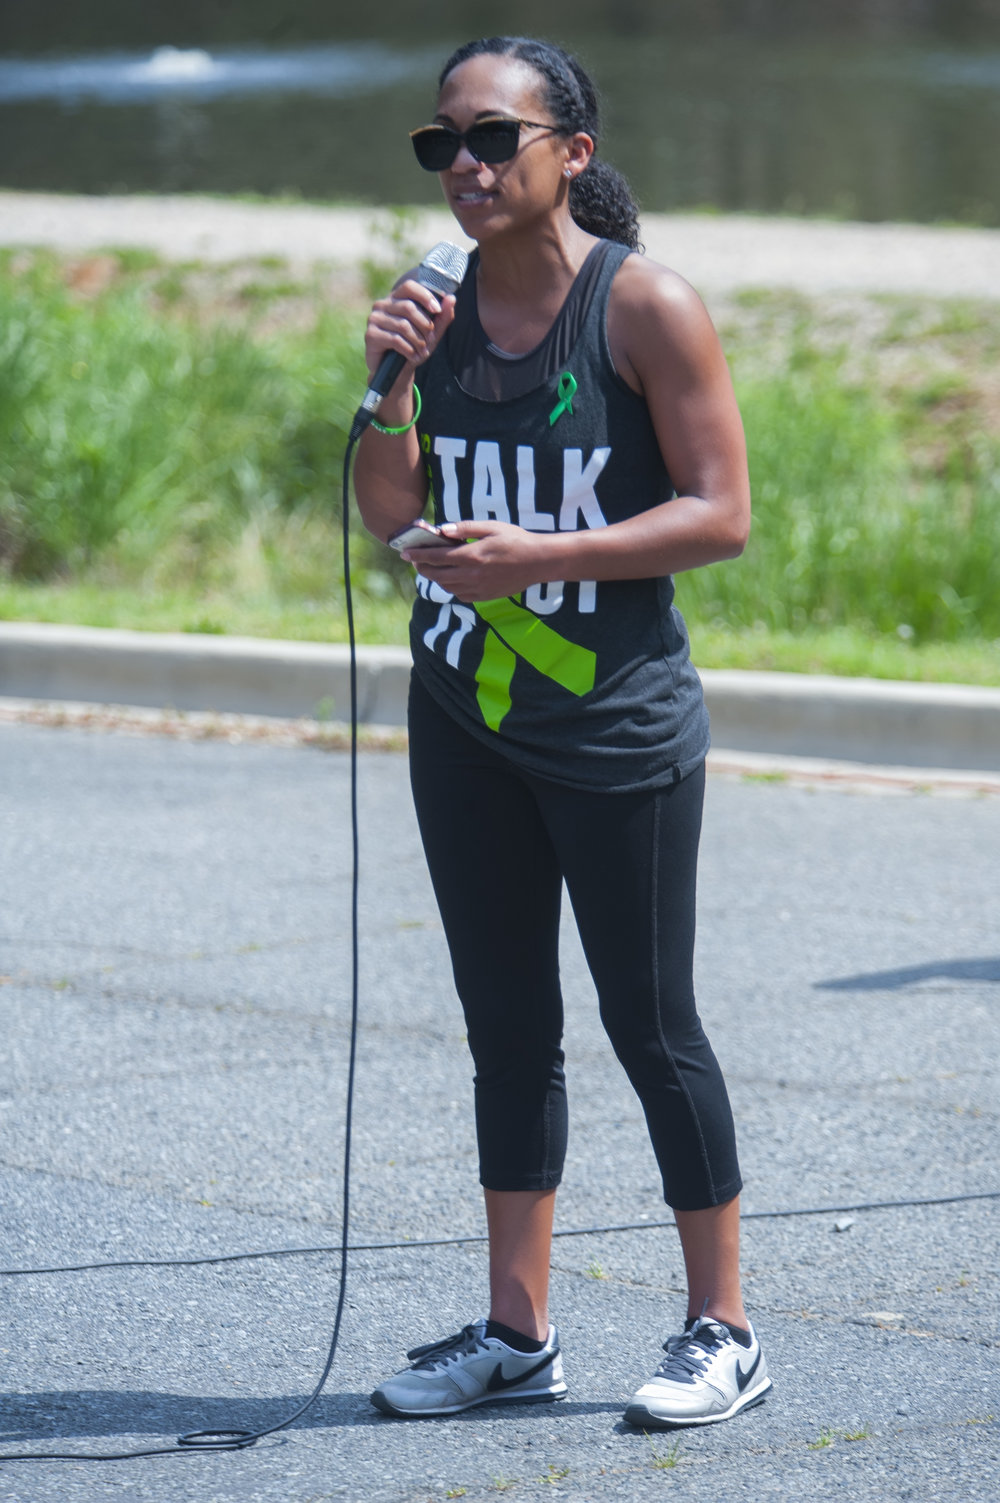 2nd Annual Let's Talk About It Mental Health Awareness Walk @ Park Rd Park 5-20-17 by Jon Strayhorn 136.jpg